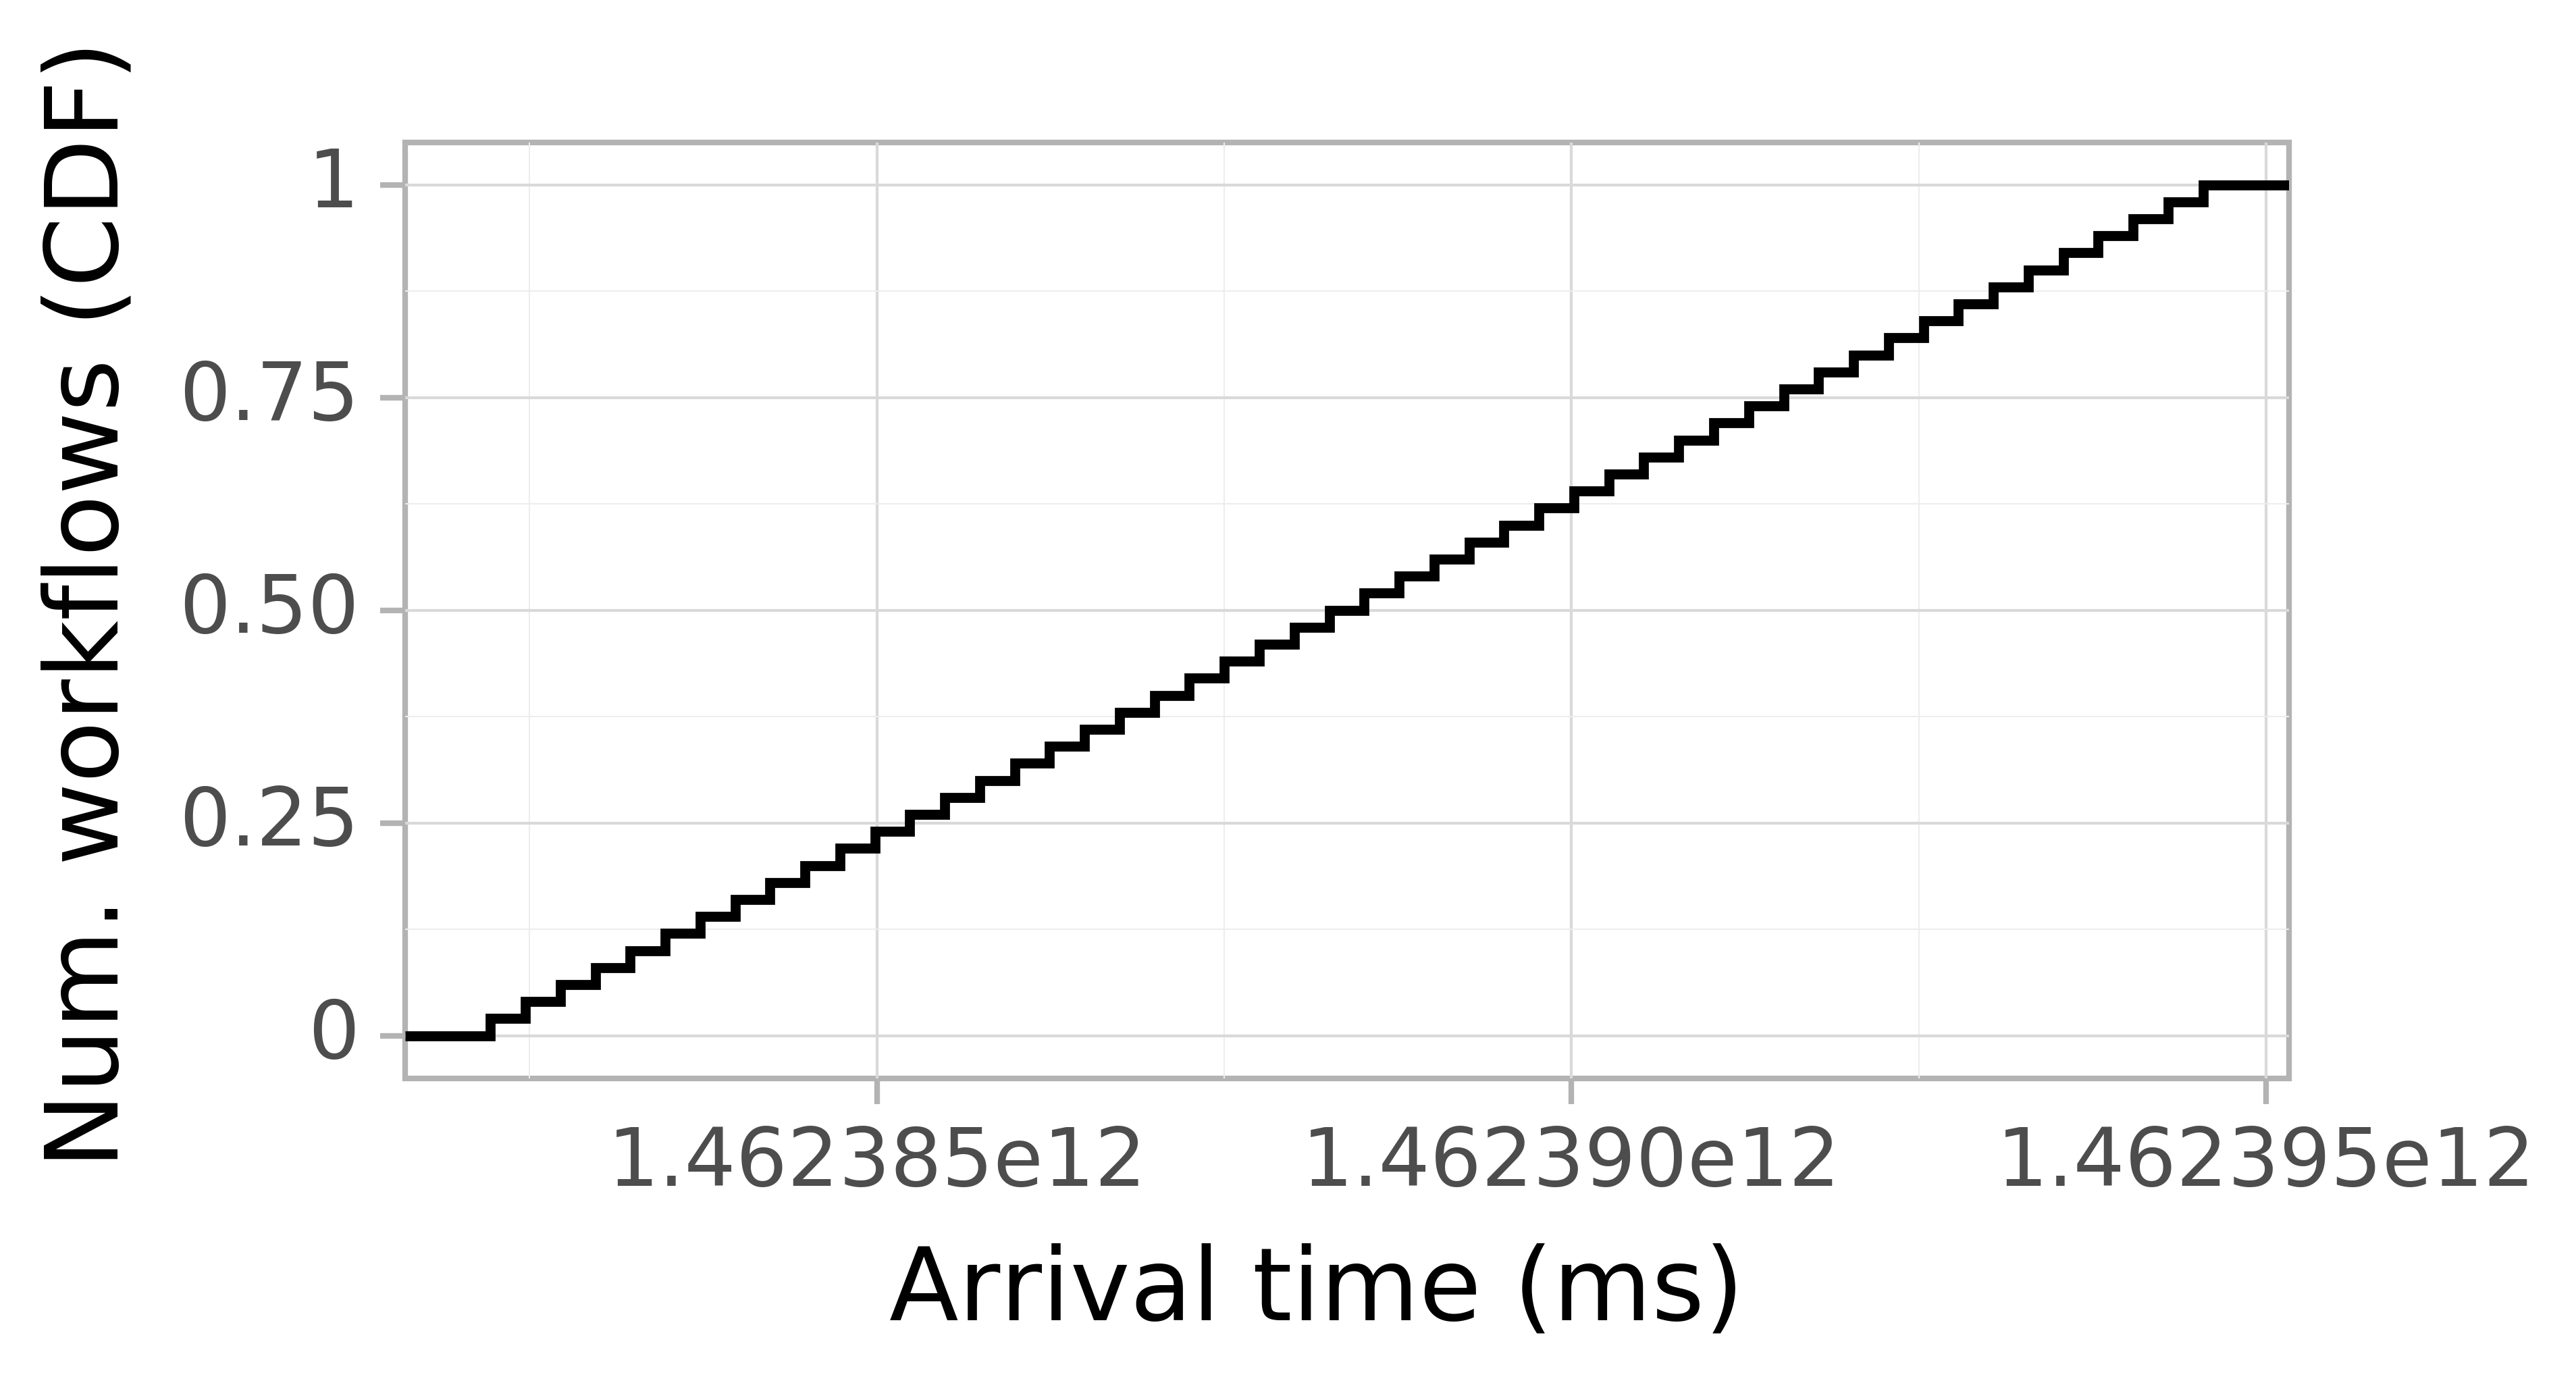 Job arrival CDF graph for the askalon-new_ee37 trace.